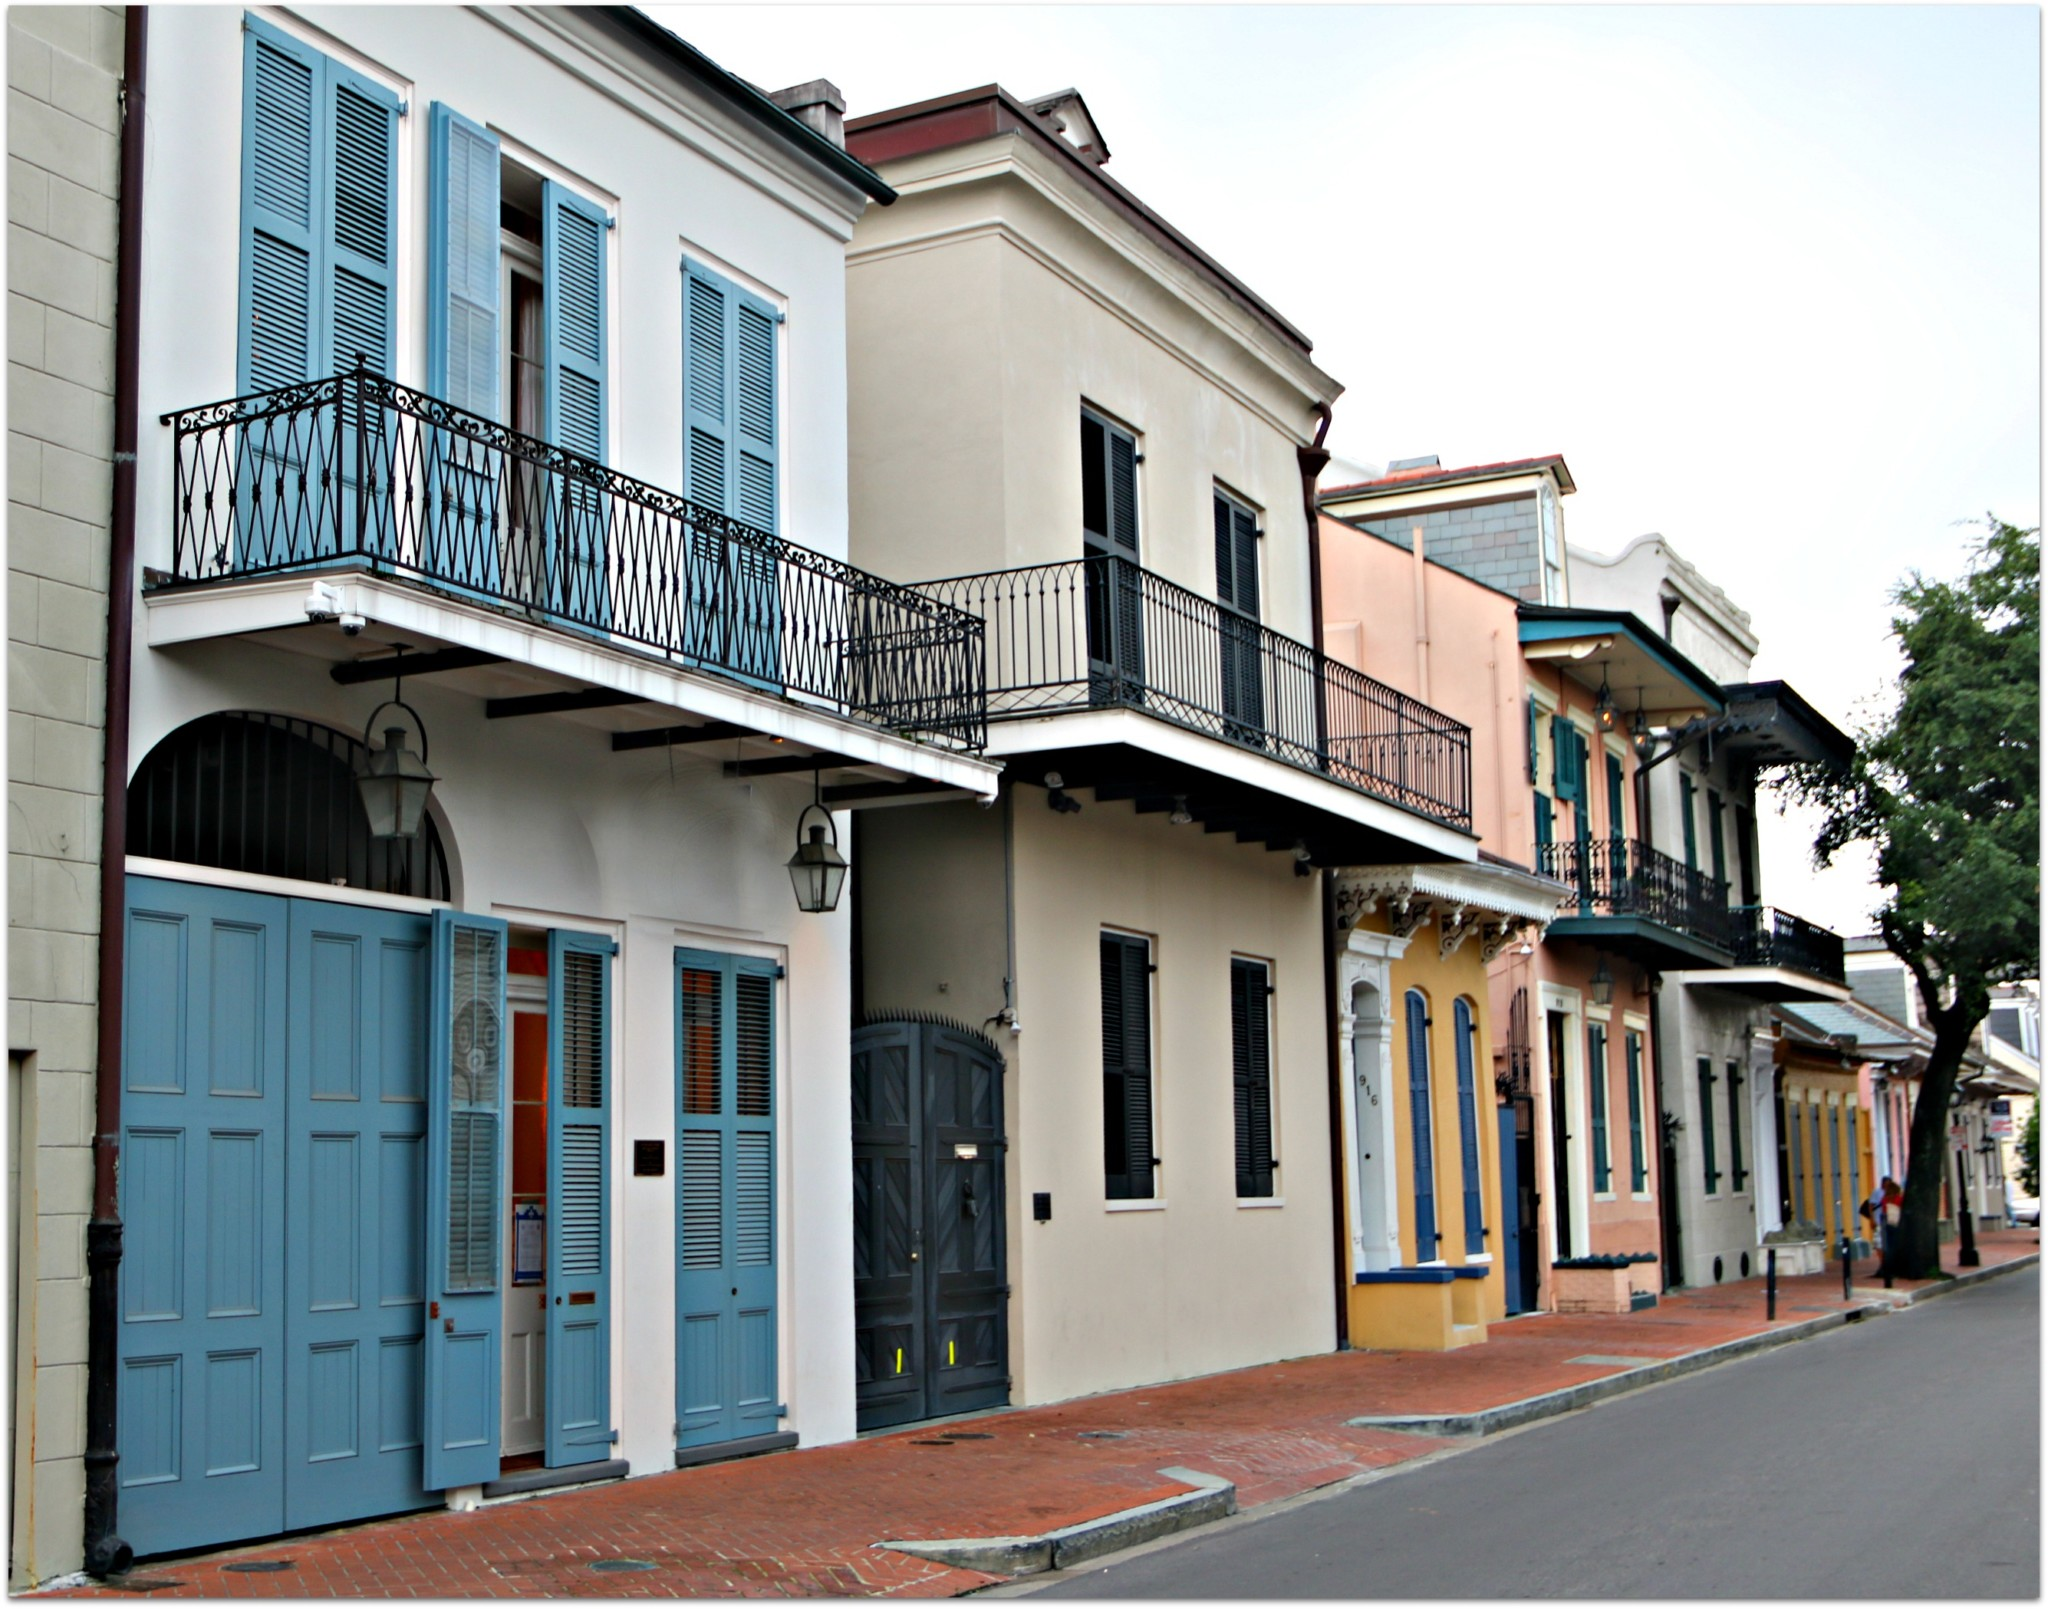 French Quarter Townhome Row